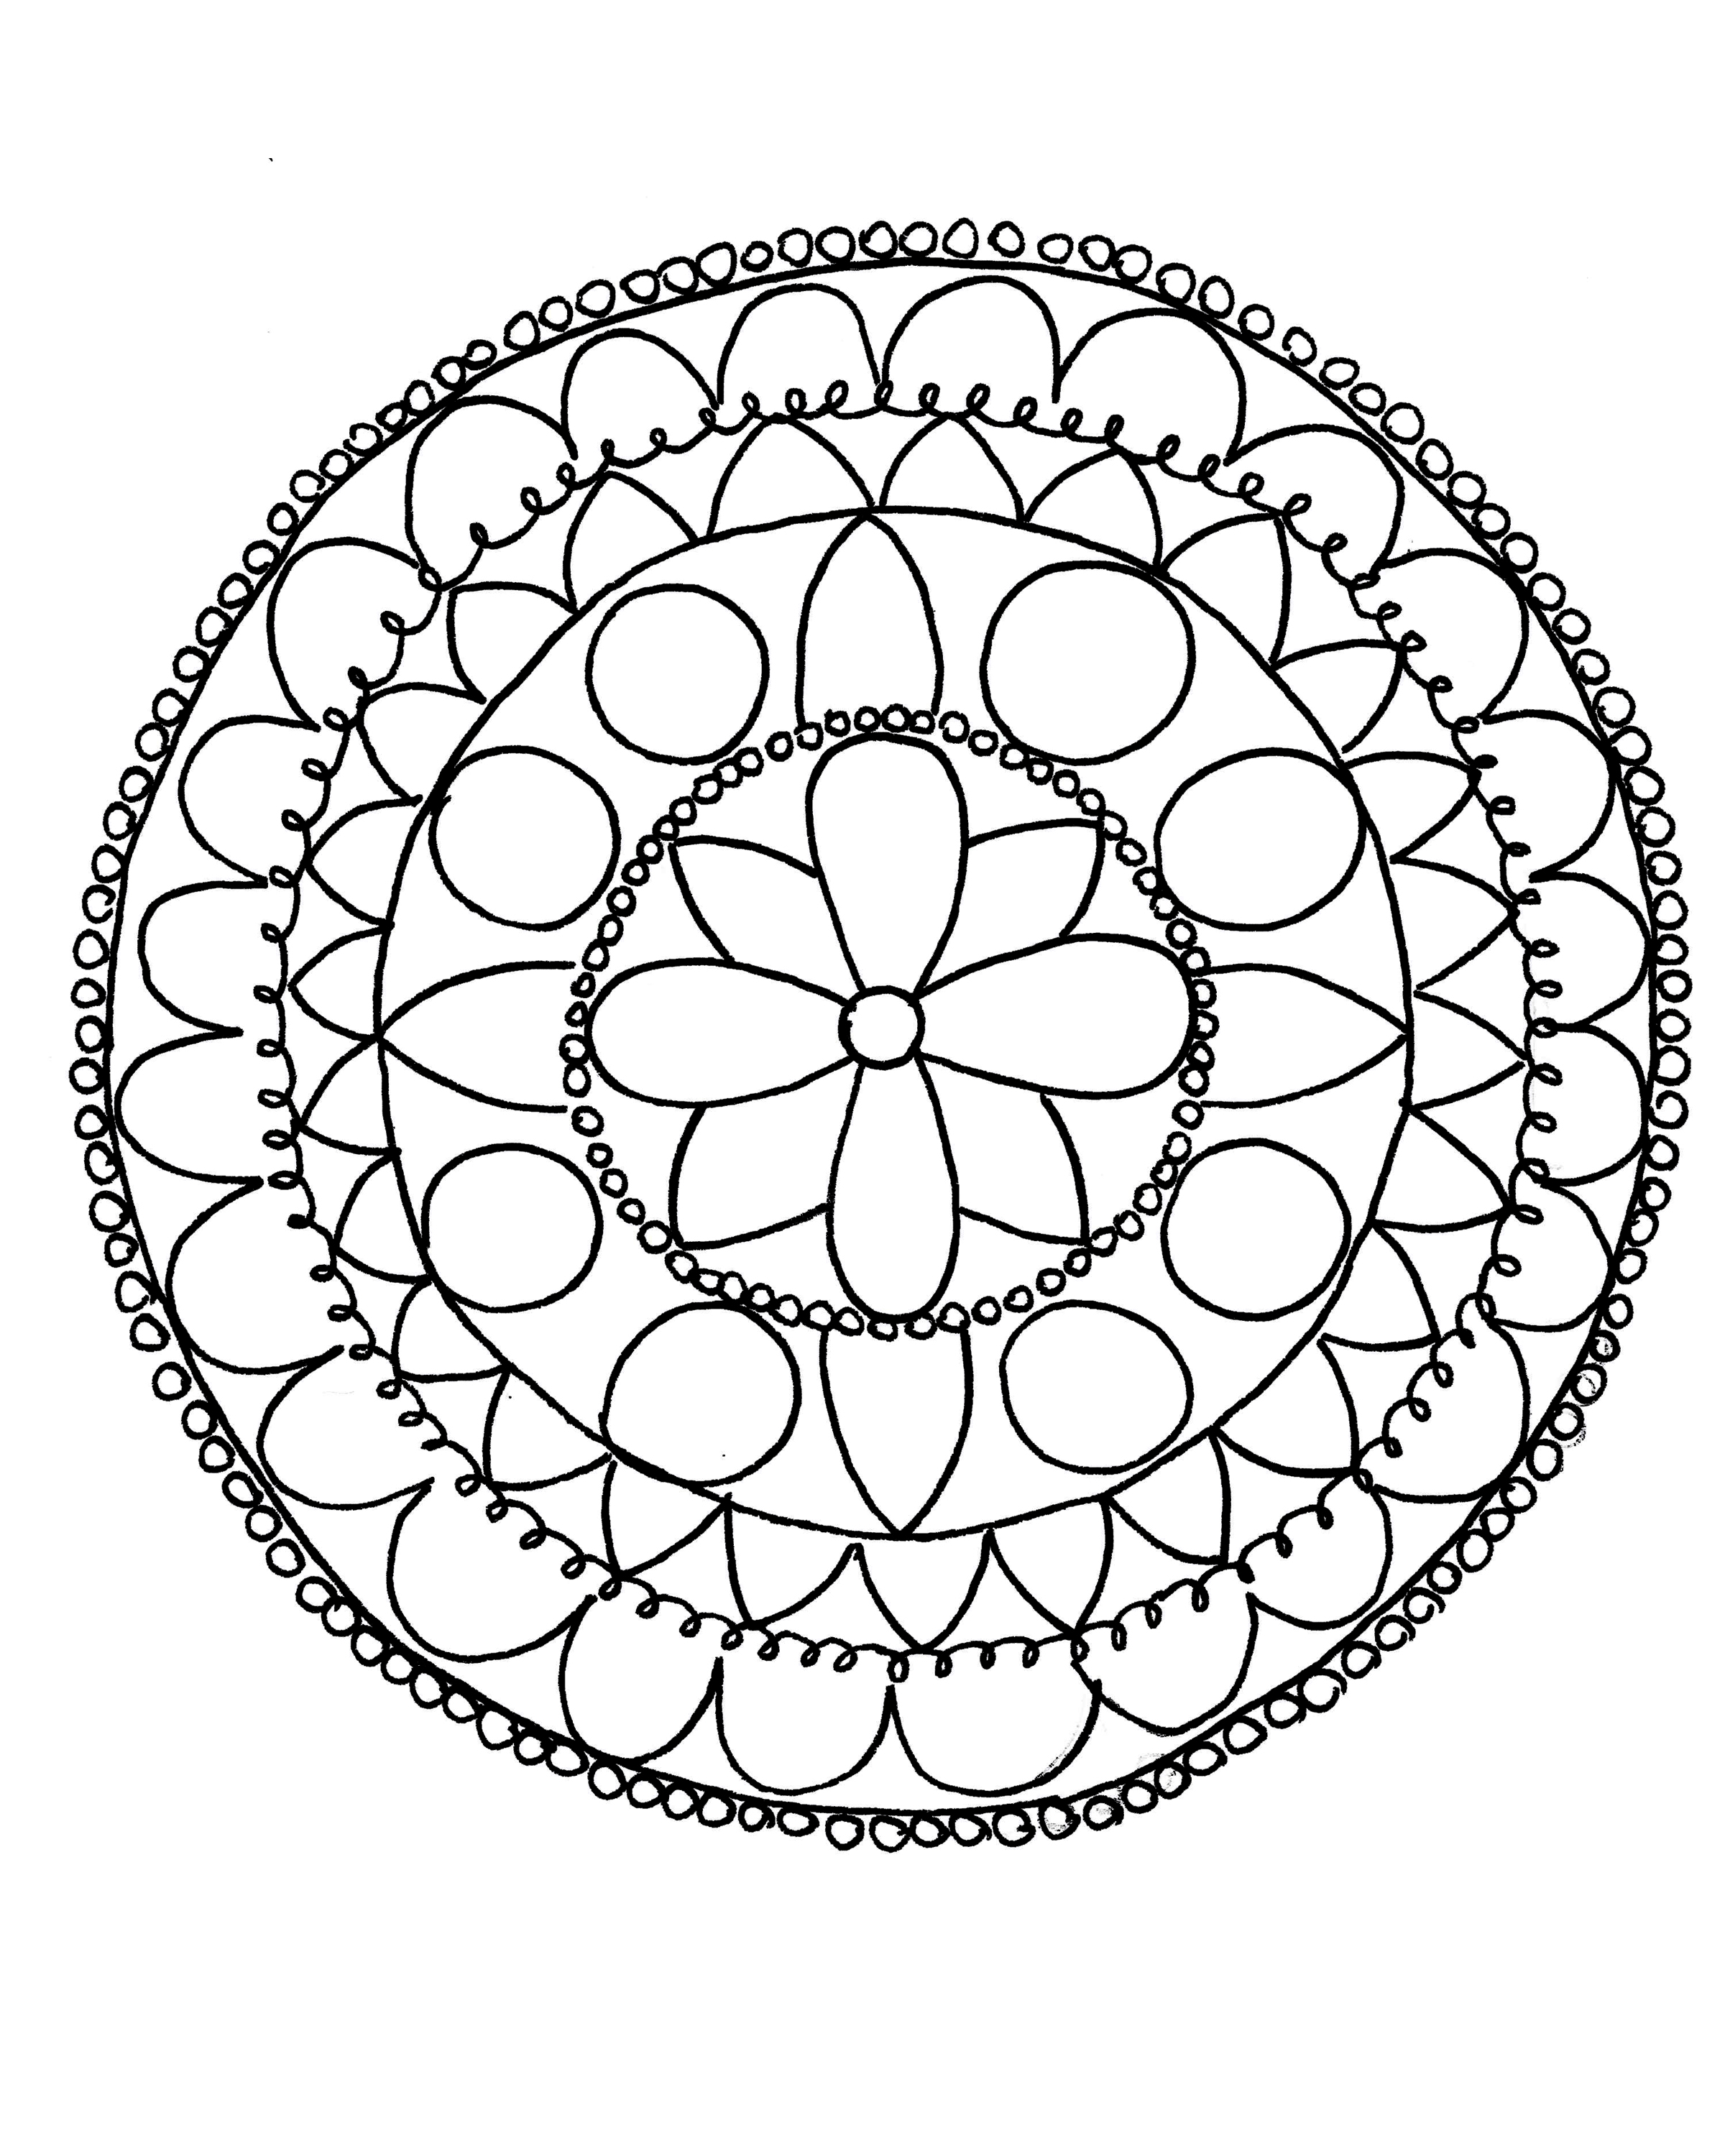 photograph relating to Free Printable Mandalas for Beginners known as Uncomplicated Mandala Drawing at  Free of charge for individual